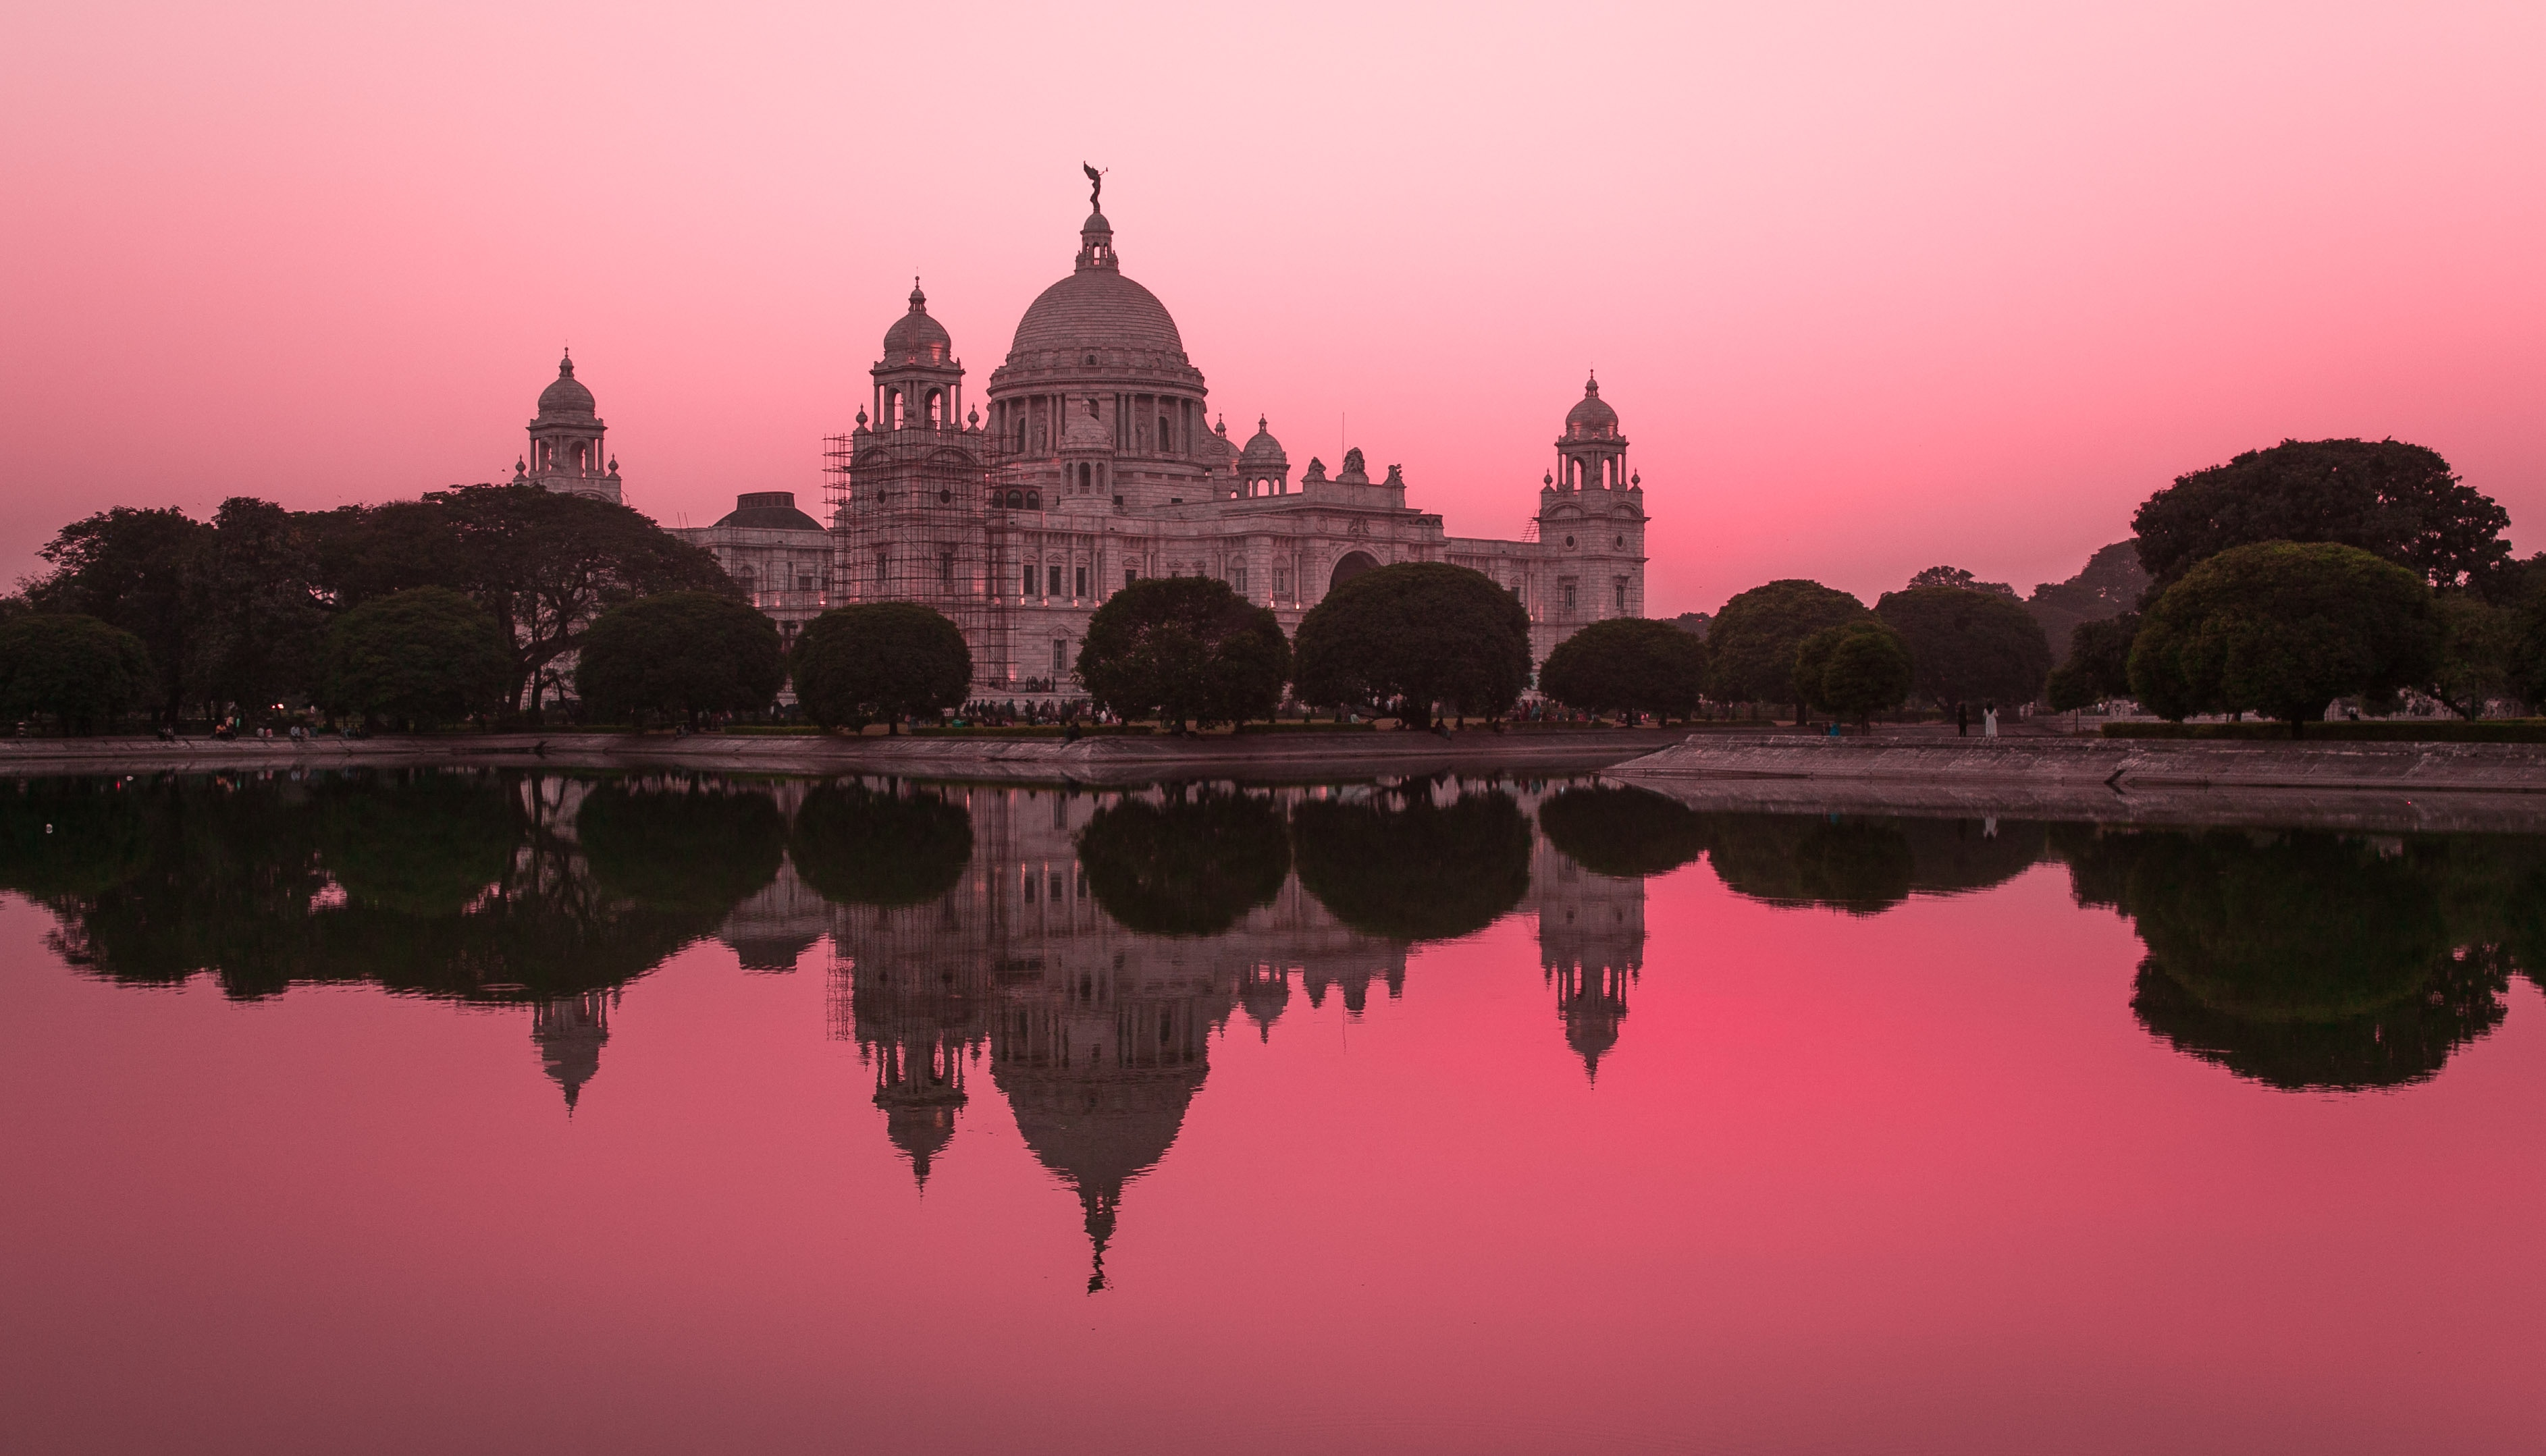 British-Colonial-Architecture-in-India-Victoria Memorial Kolkata